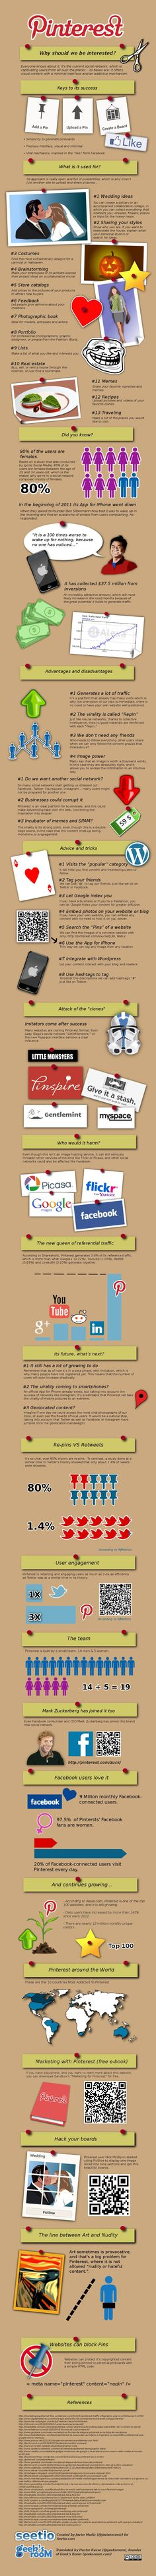 Infographic for Pintrest